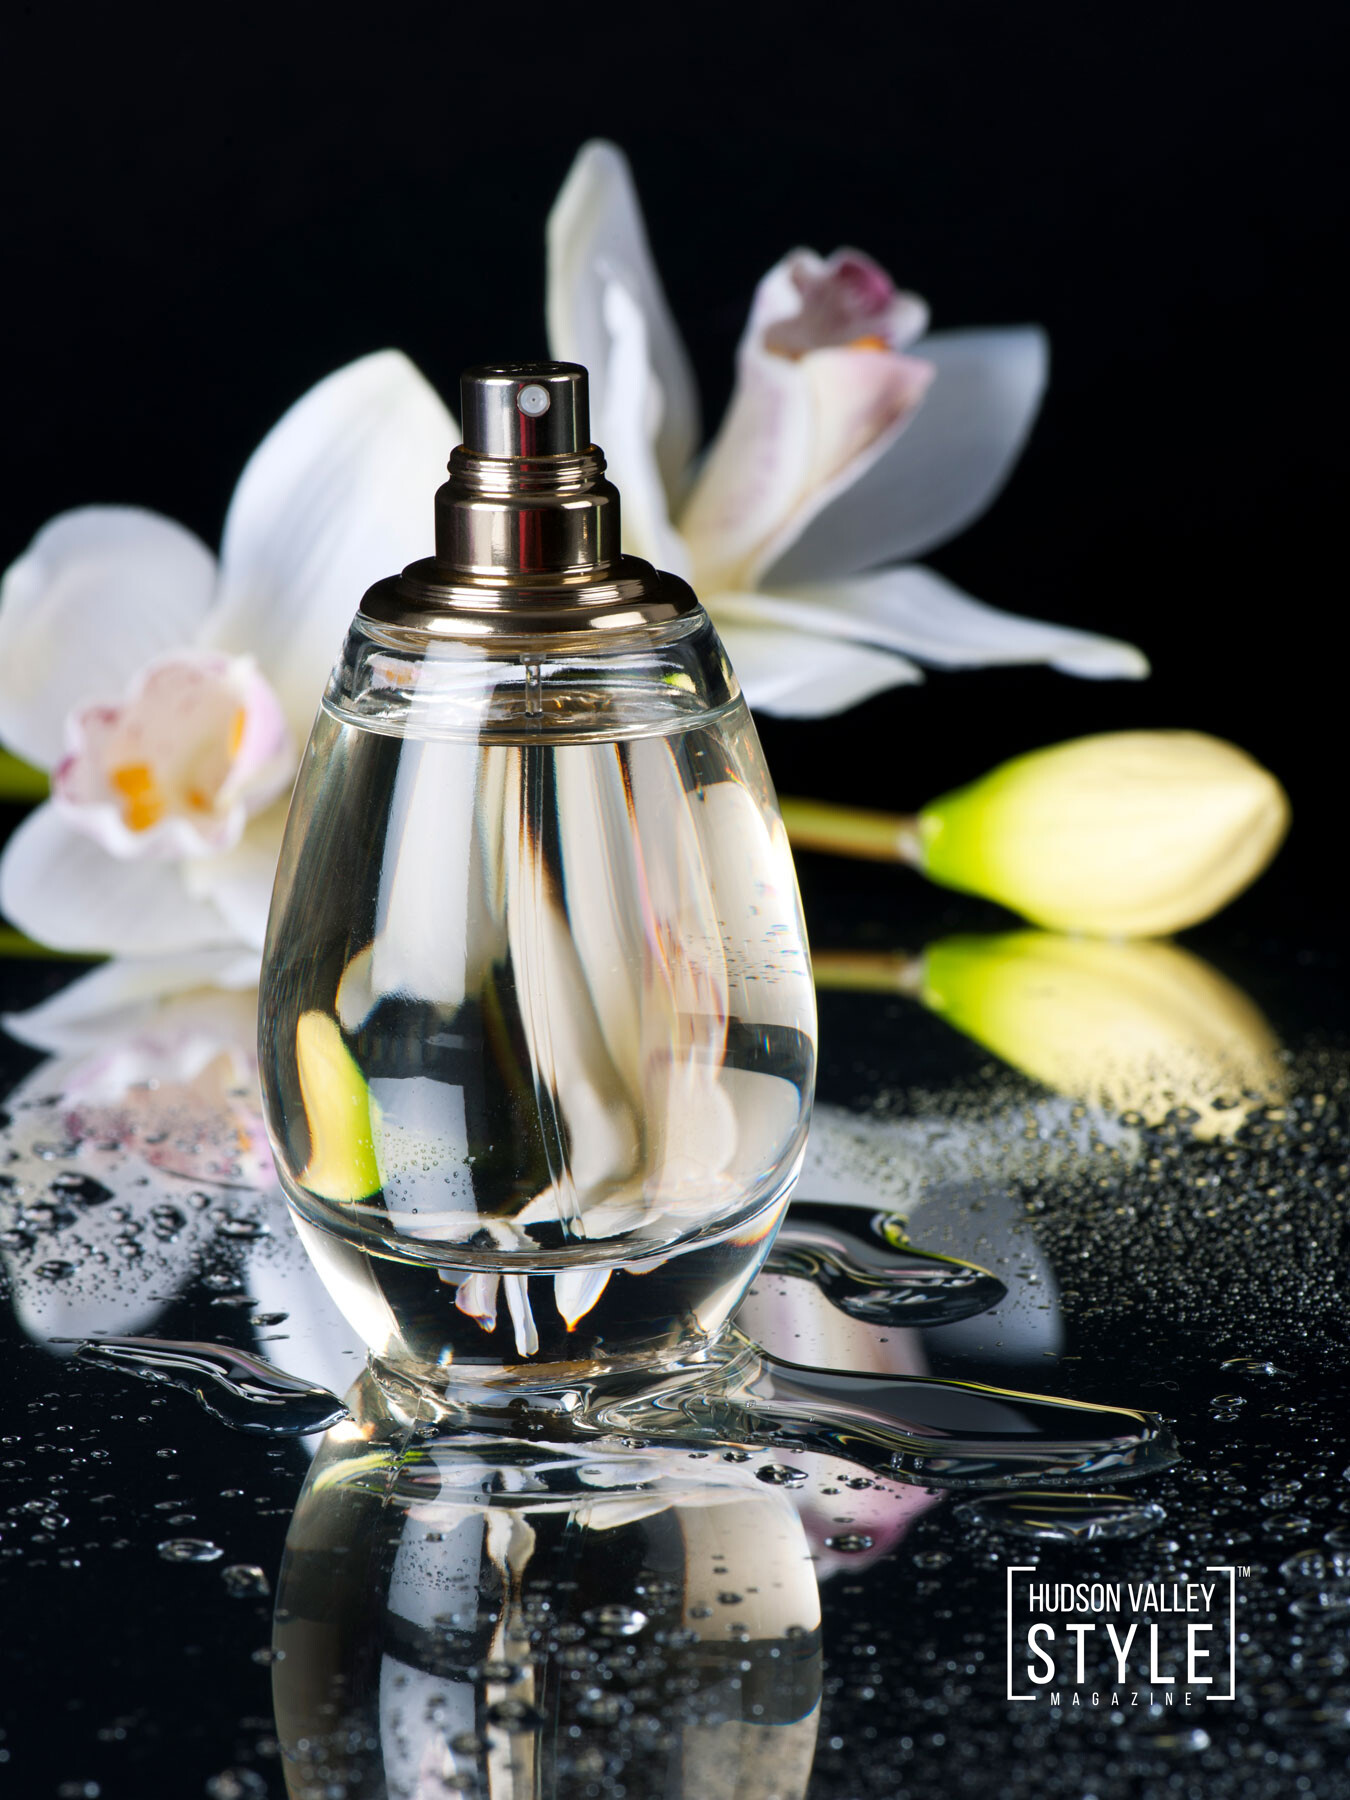 Compare Your Perfumes To An Opera. Which One Would It Be? – Perfume Gifts